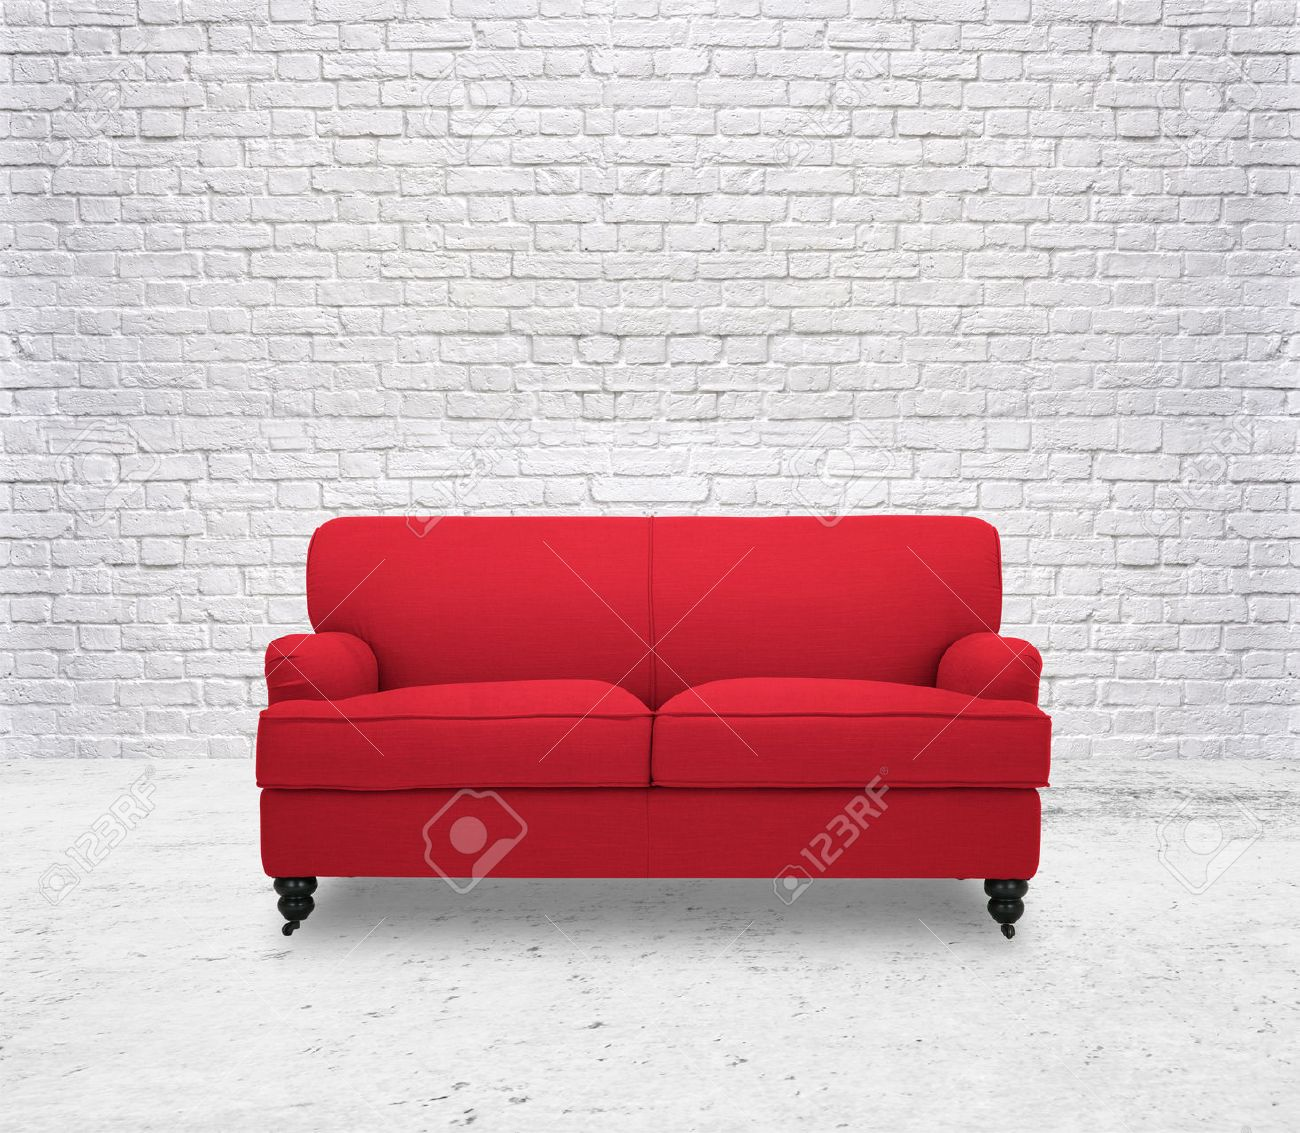 Modern Red Sofa In White Room Brick Wall Stock Photo, Picture And ...